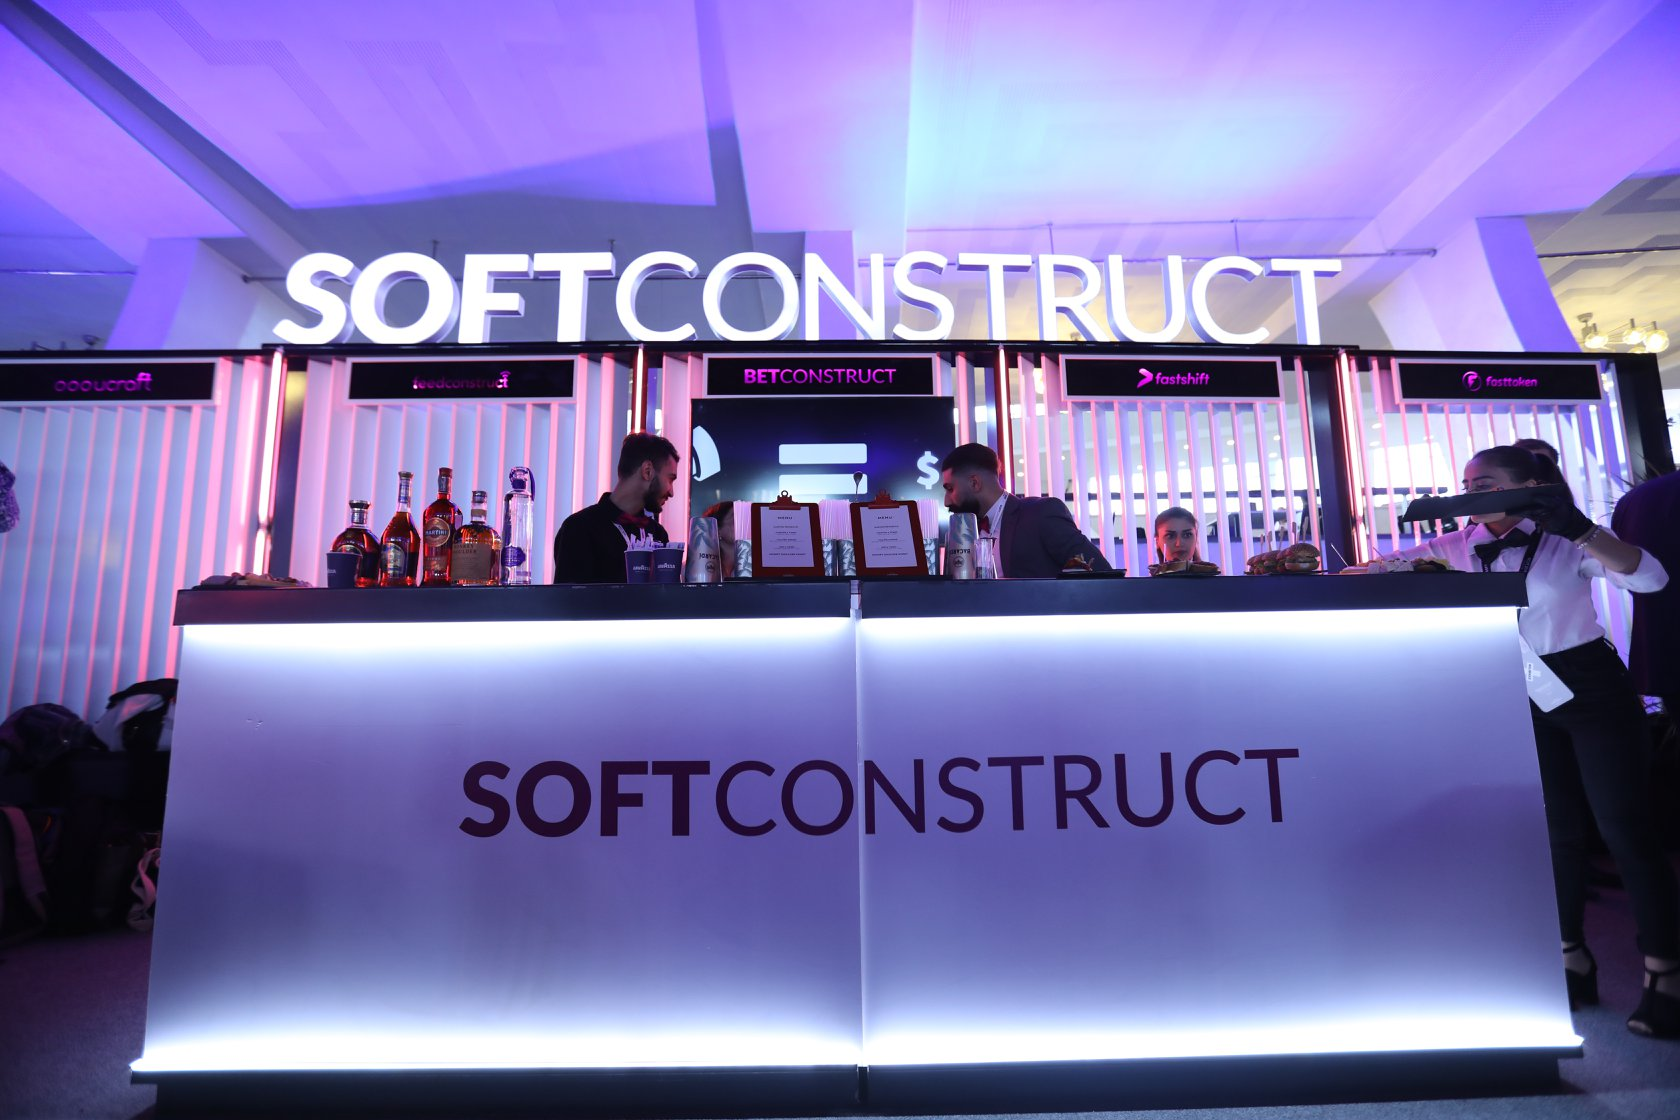 SoftConstruct at WCIT 2019 Yerevan